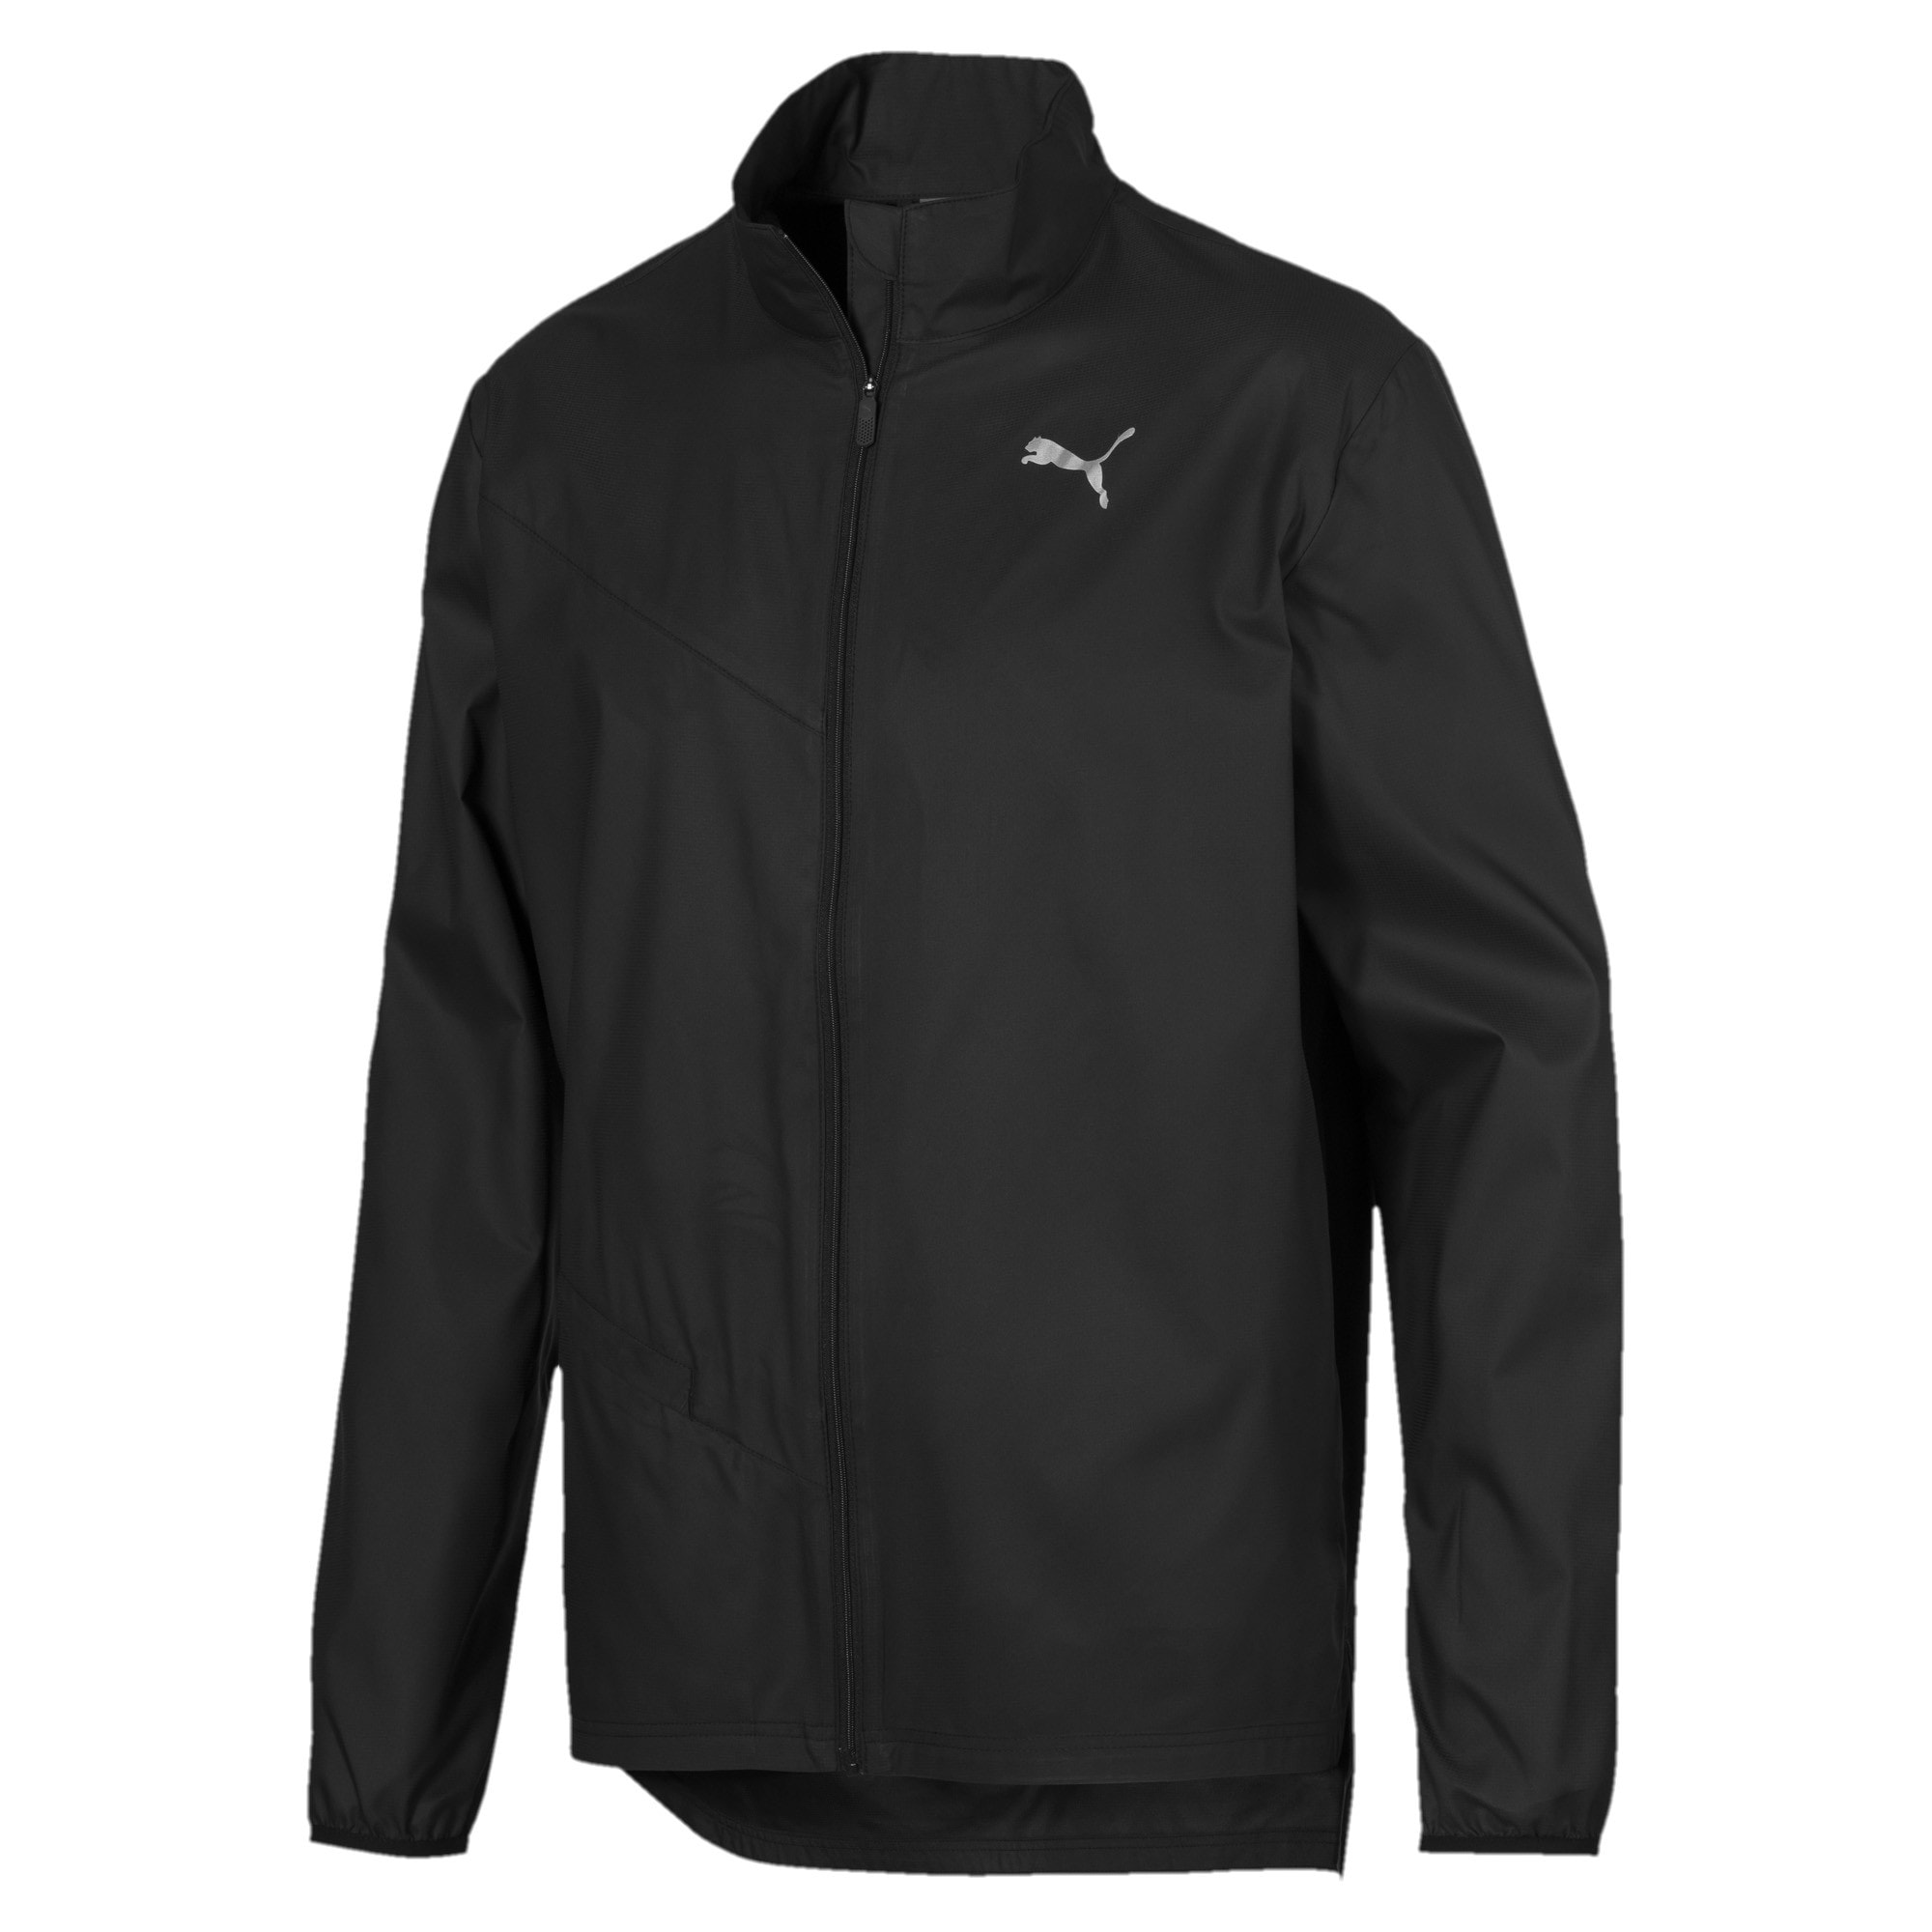 Thumbnail 4 of IGNITE Woven Men's Running Track Jacket, Puma Black-Puma Black, medium